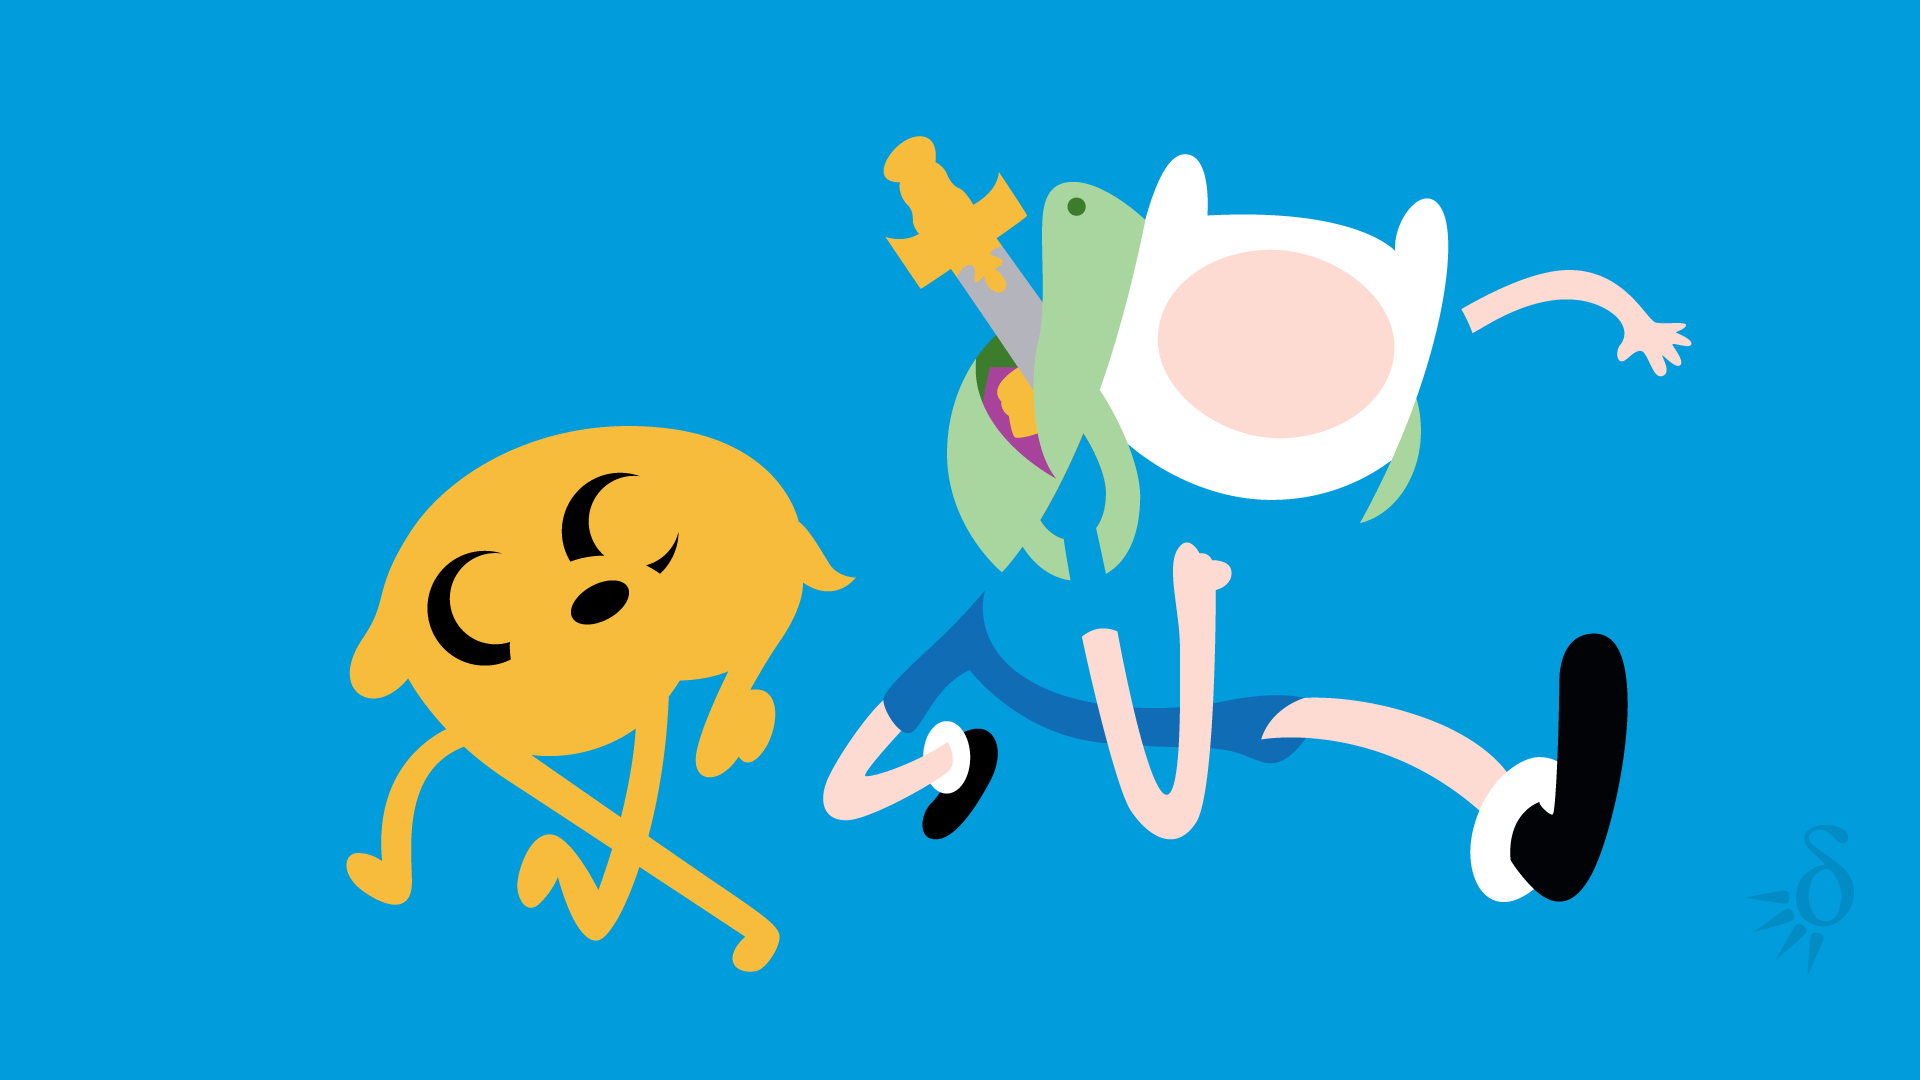 adventure time with finn and jake wallpapers Group with 77 items